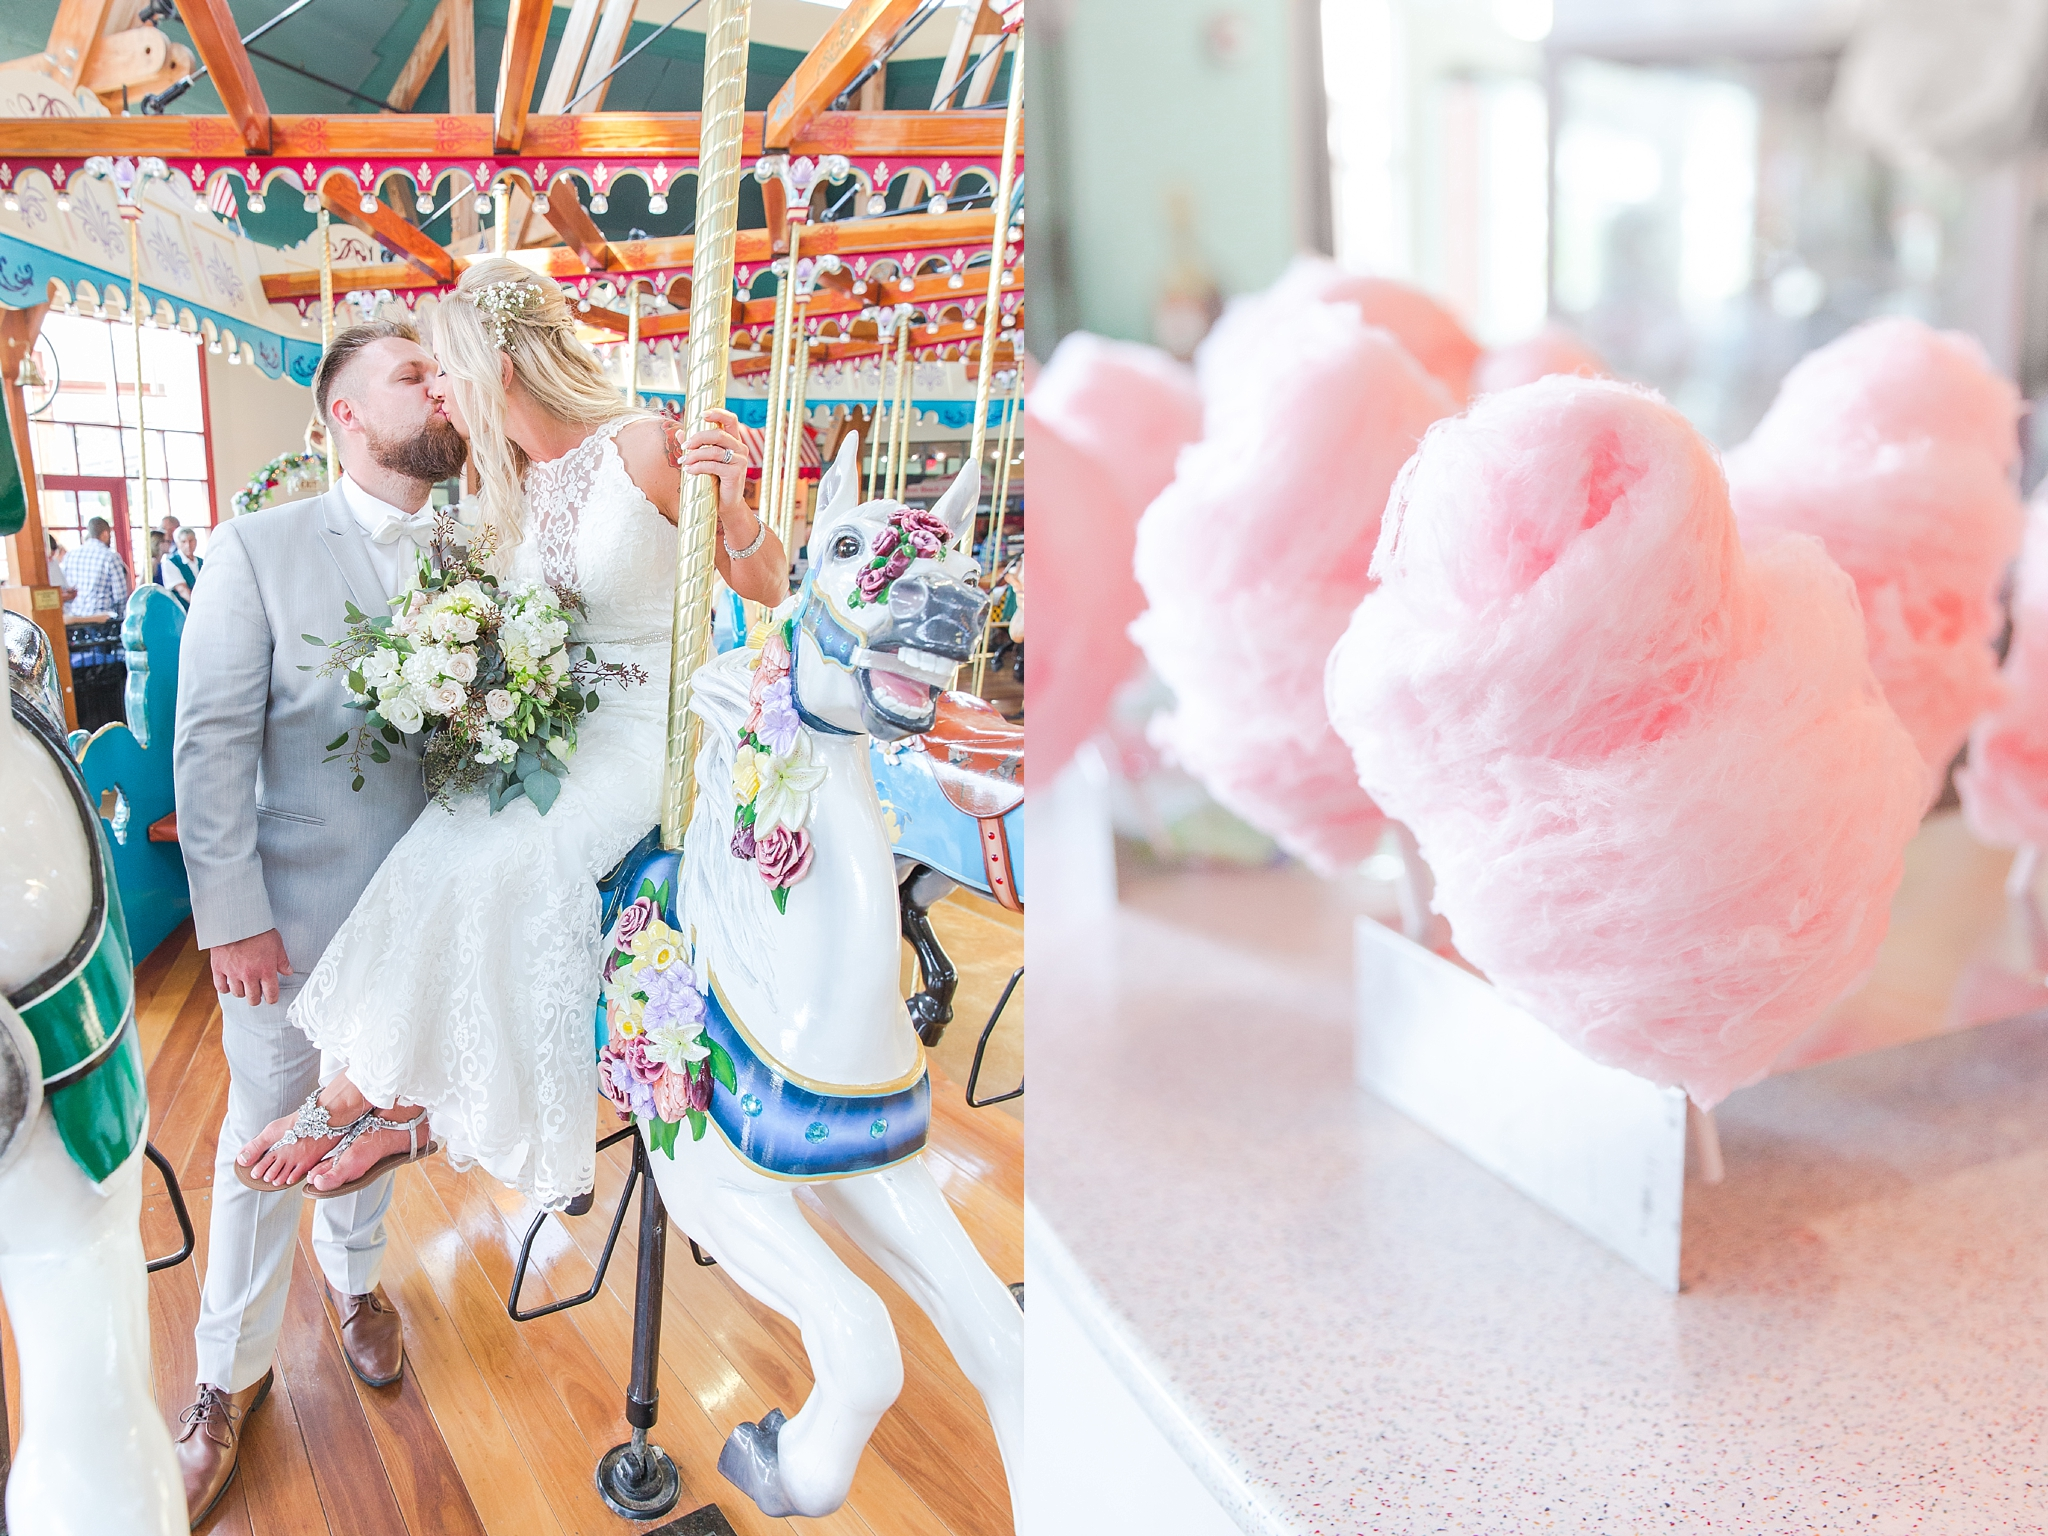 romantic-artful-candid-wedding-photos-in-detroit-lansing-ann-arbor-northern-michigan-and-chicago-by-courtney-carolyn-photography_0078.jpg